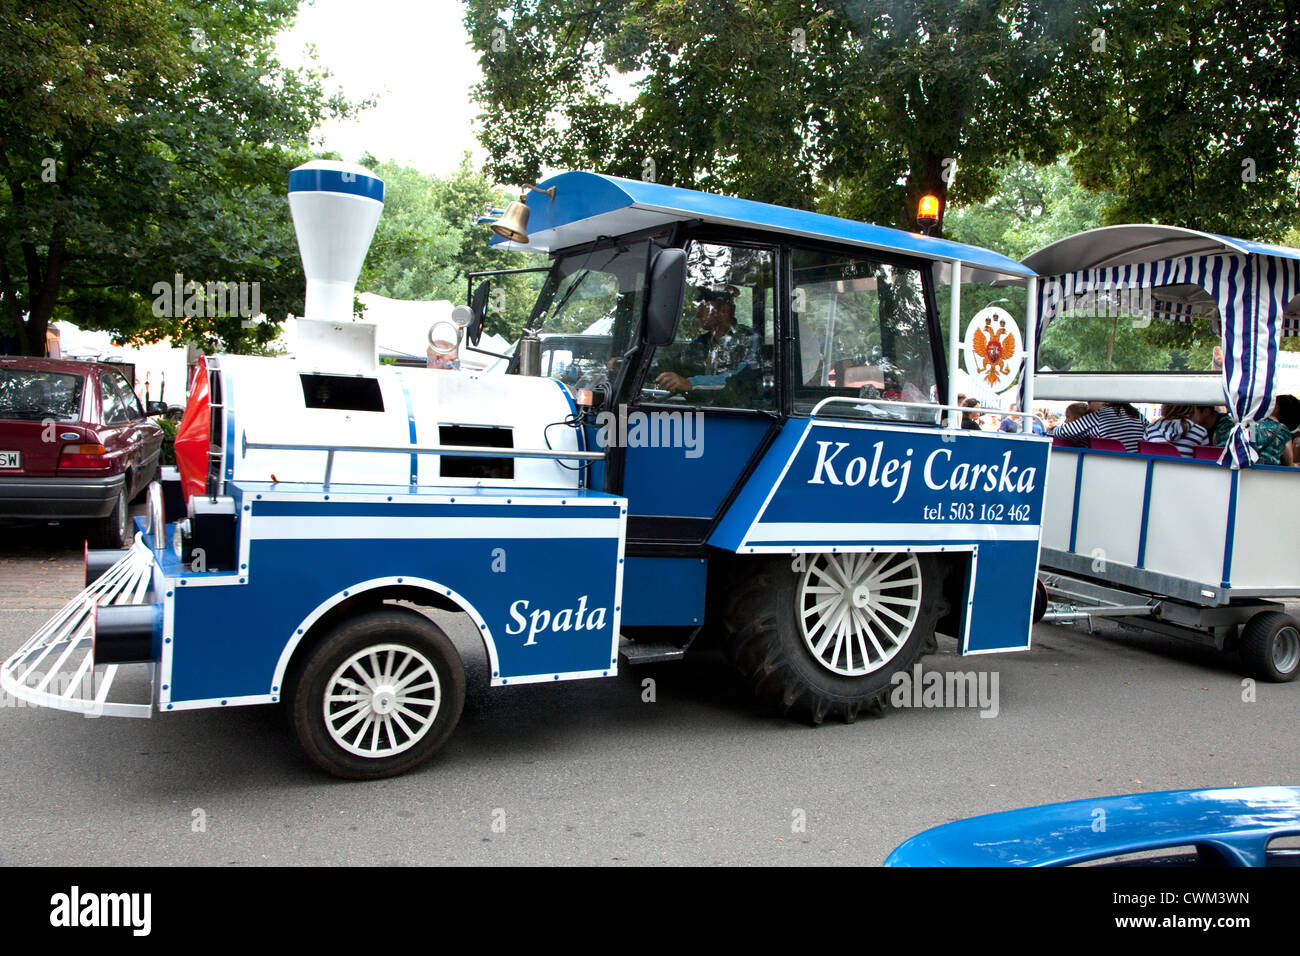 Railroad like engine pulling trailer of sightseers around country fair (Rynek). Spala Central Poland - Stock Image